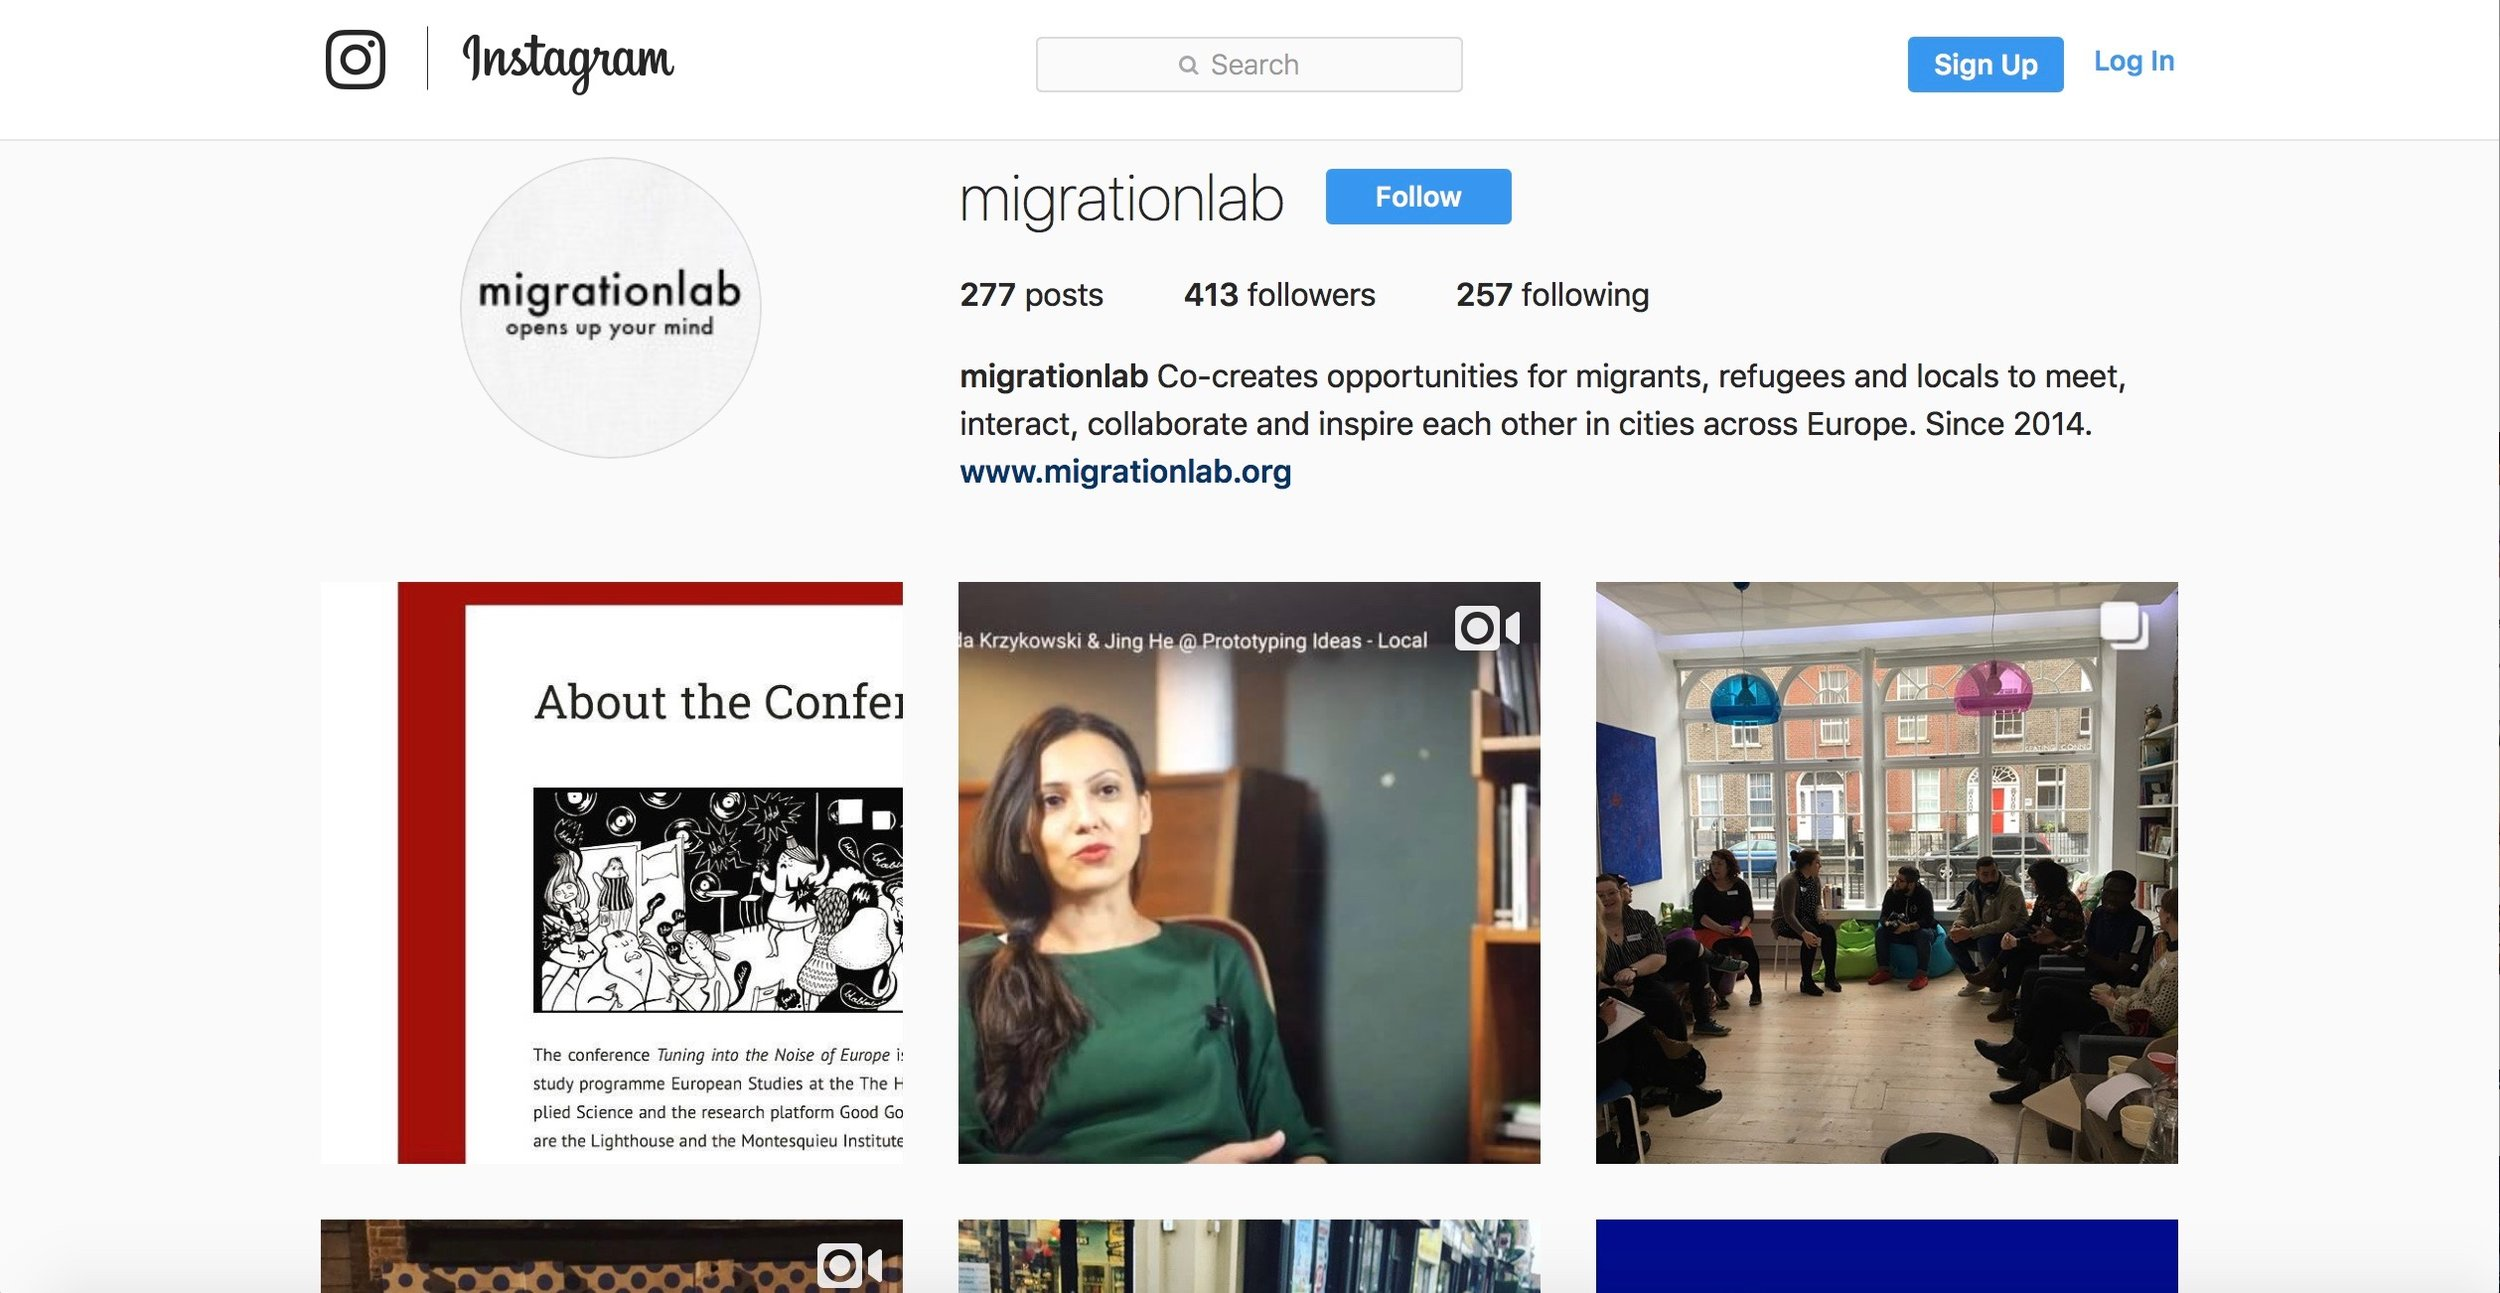 In charge of the Instagram account of the Migrationlab Foundation.